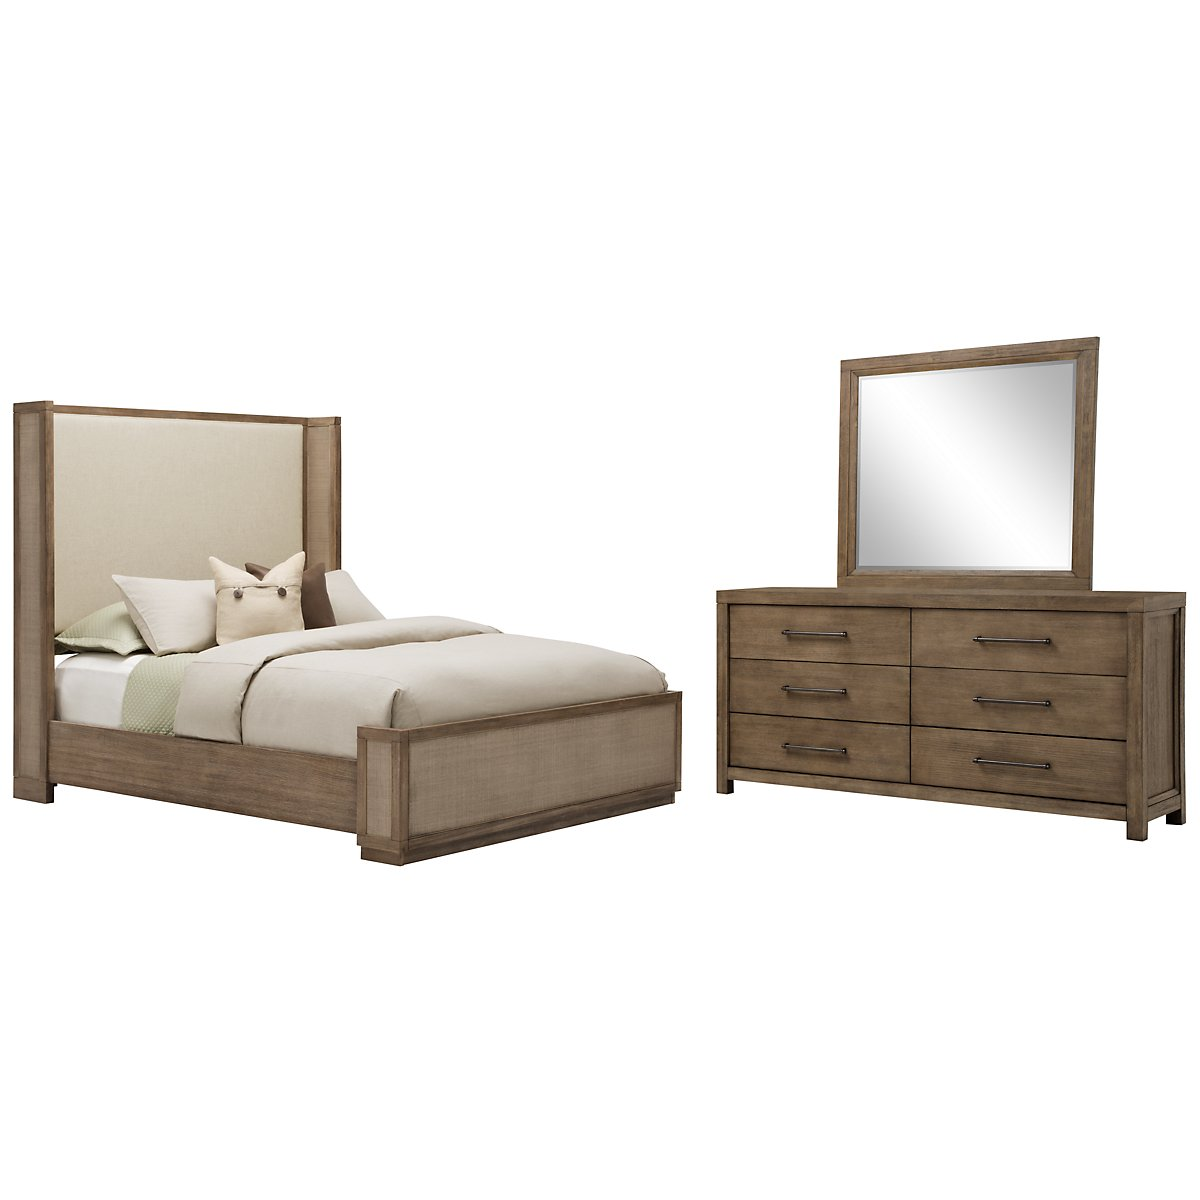 Mirabelle Light Tone Upholstered Shelter Bedroom